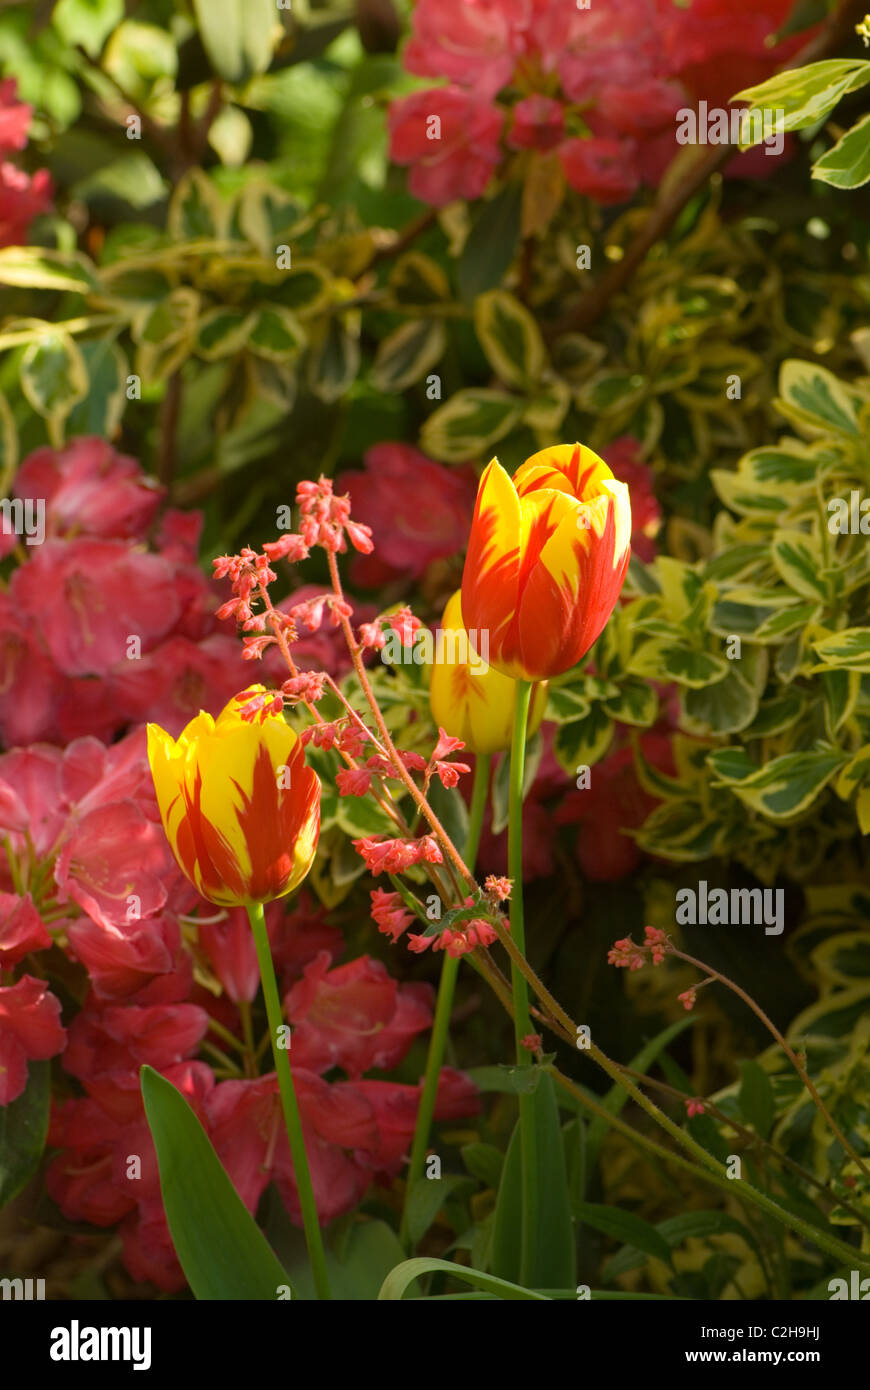 'Holland Queen' Tulips and rhododendrons - Stock Image